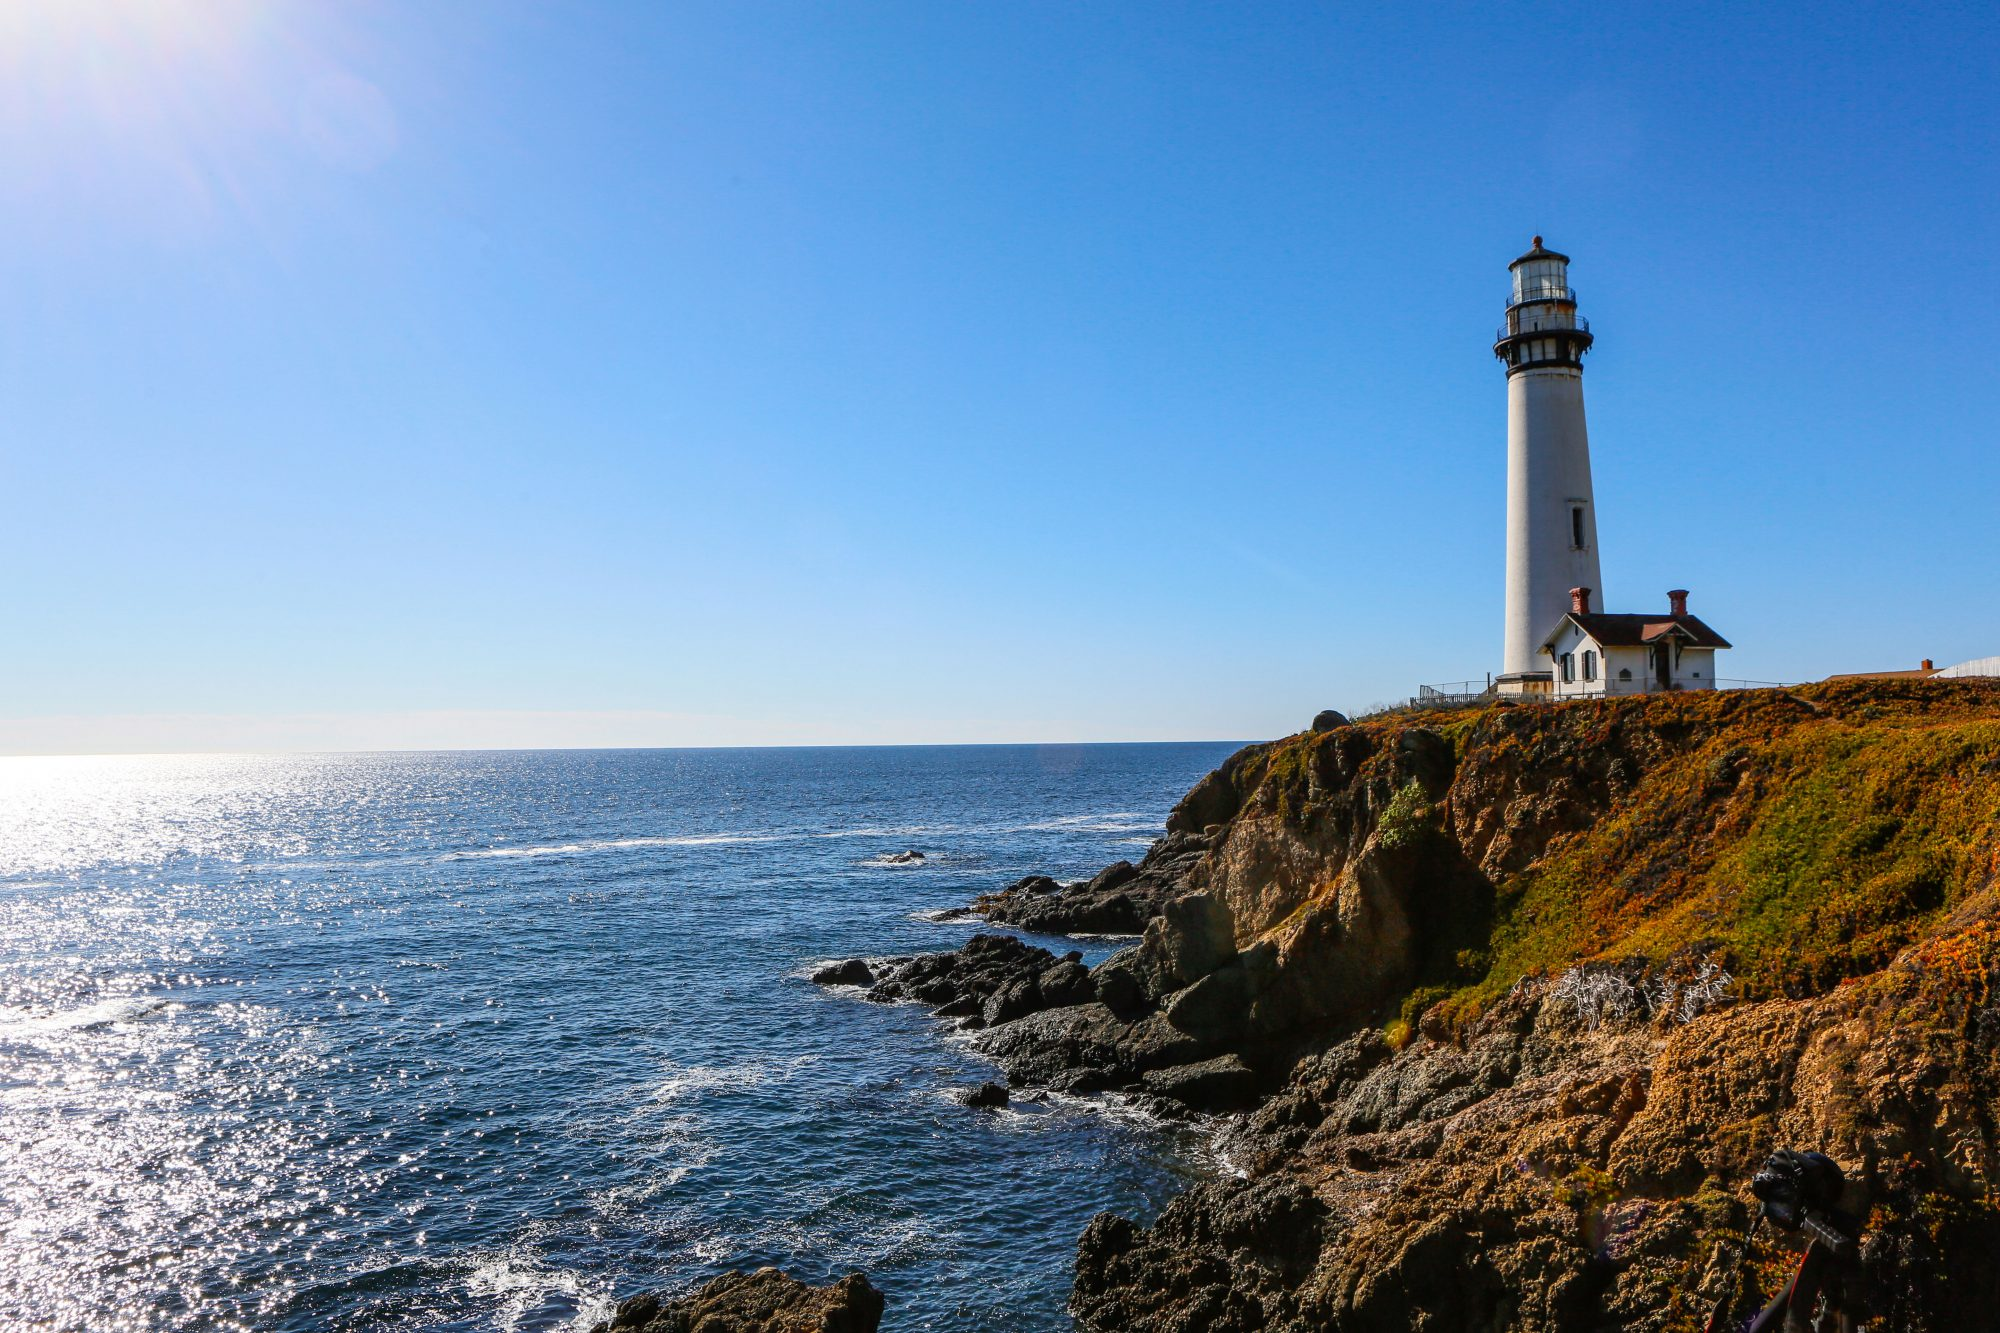 pigeon point lighthouse overlooking the water